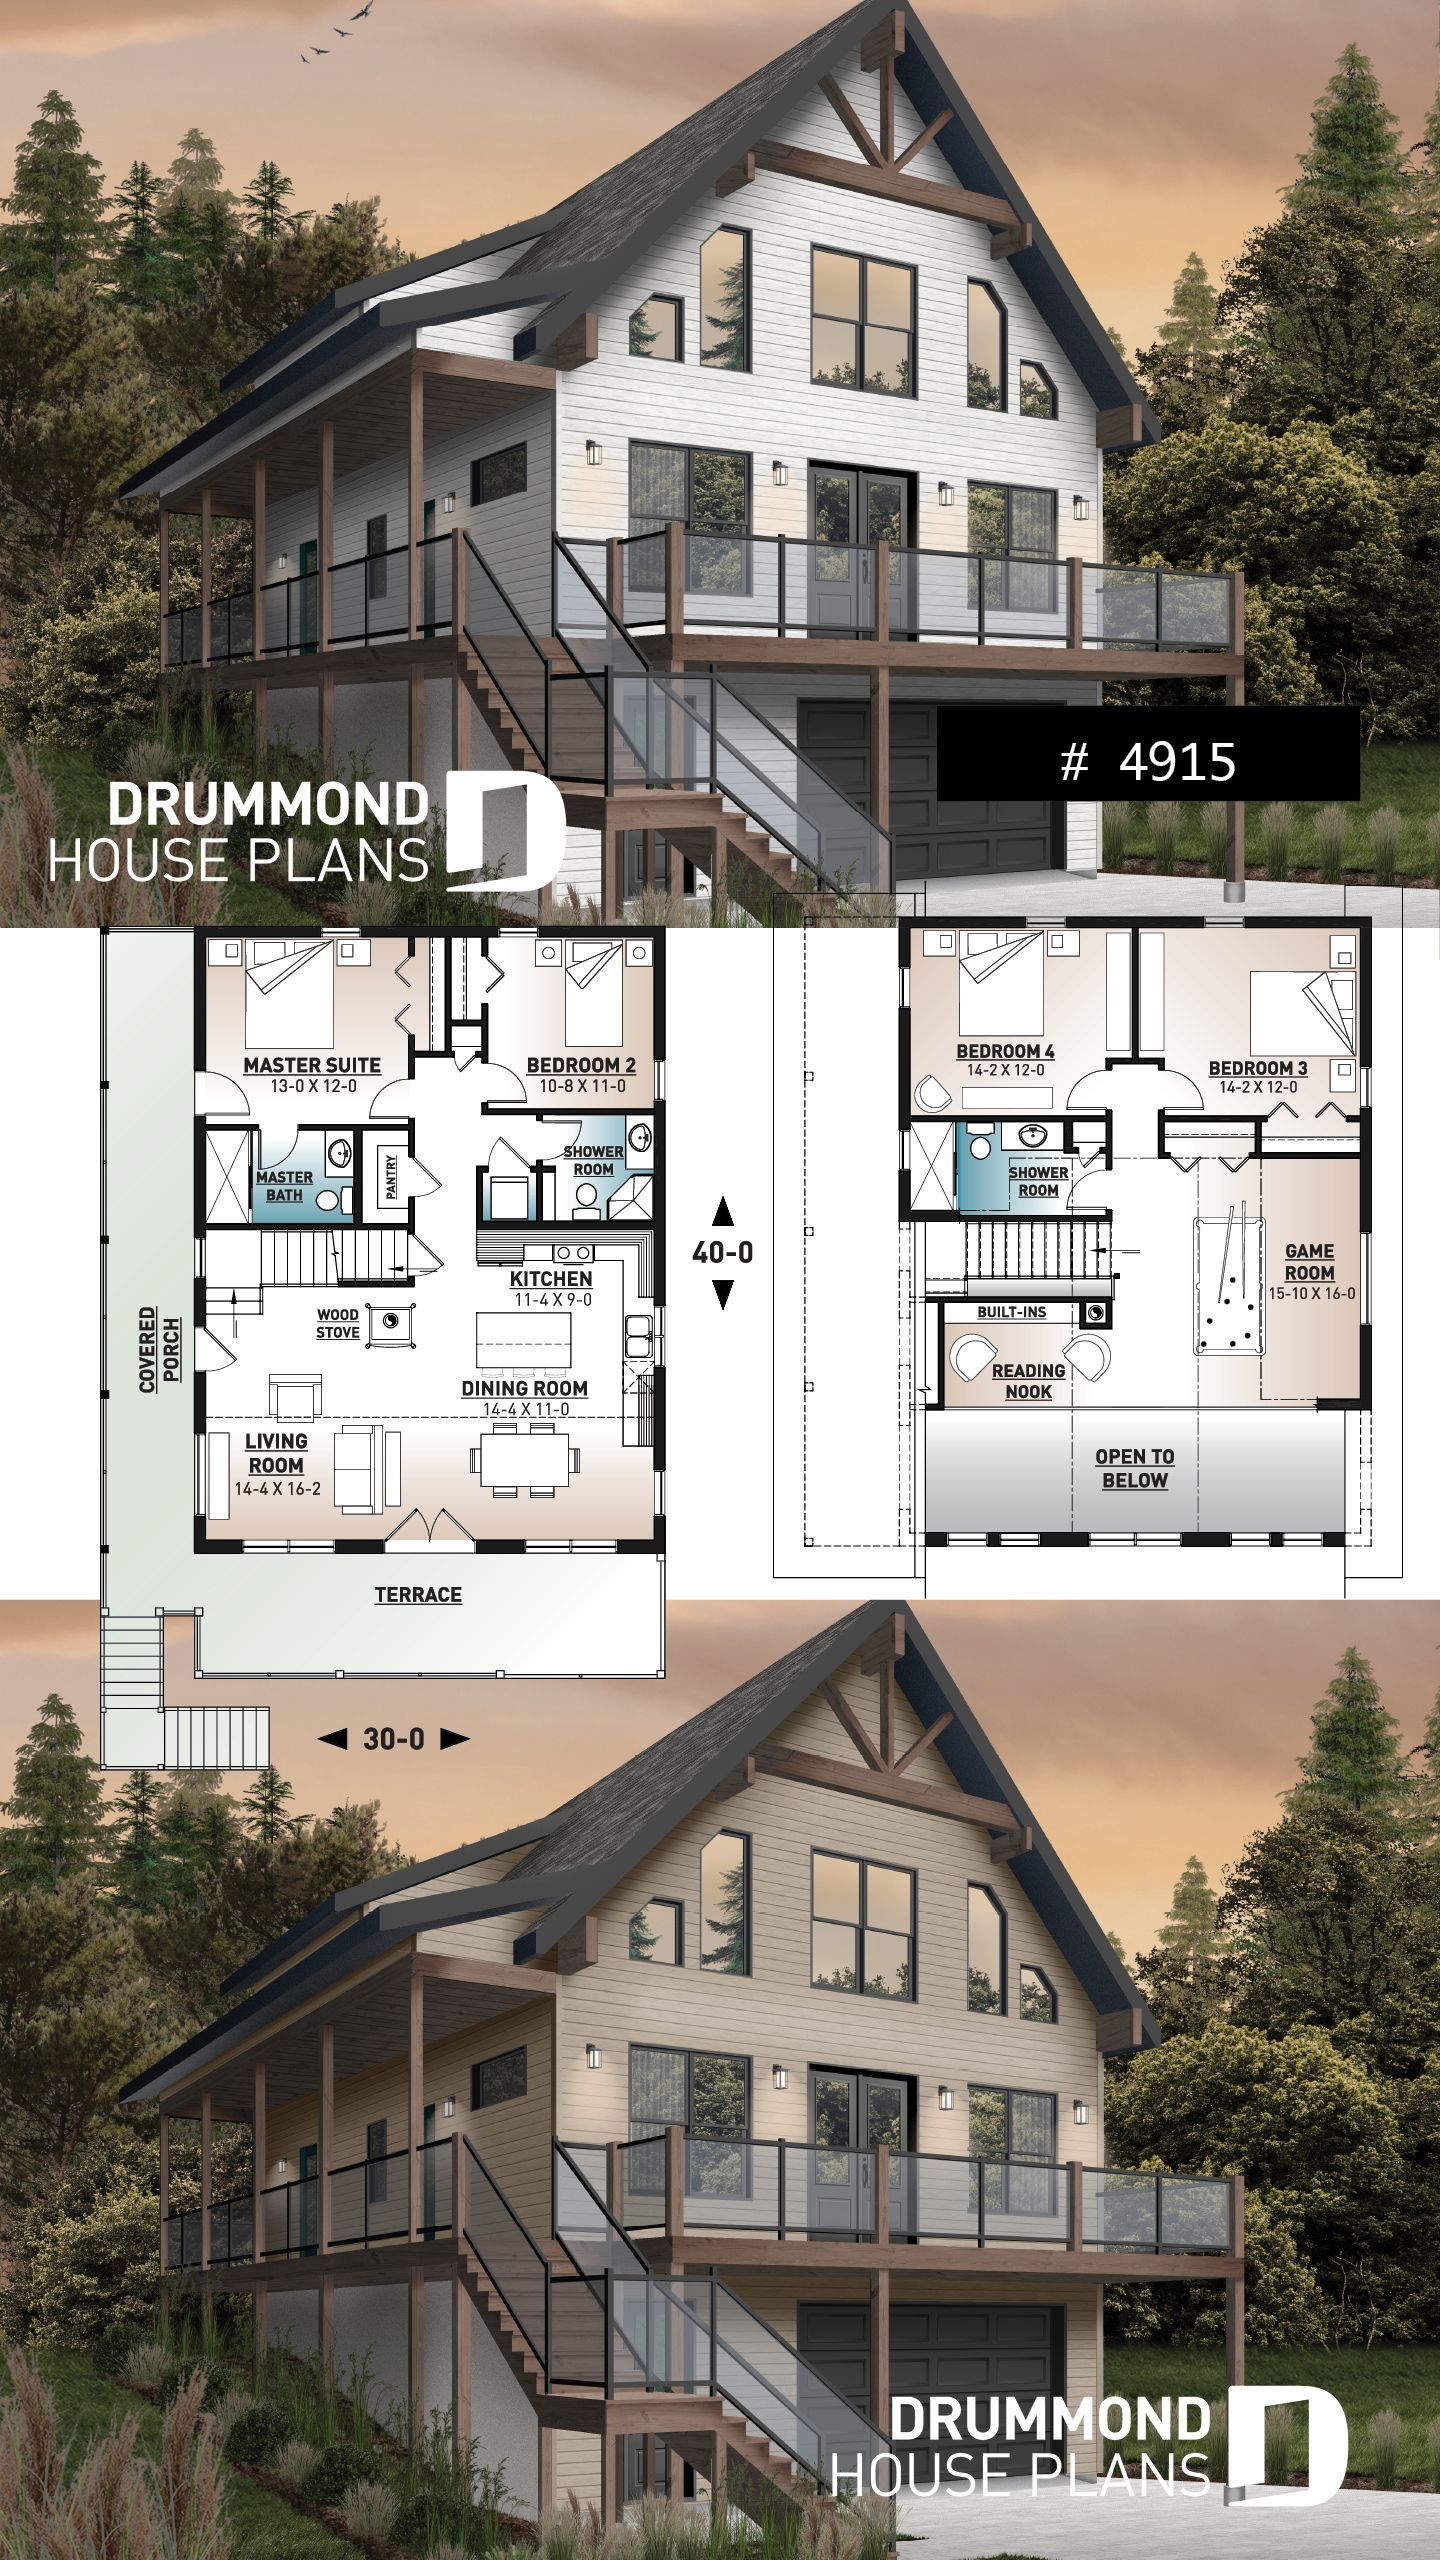 Rustic Ski Chalet Drive Under Garage Architecture Chalet Drive Garage Houseplans Moderna Craftsman House Plans Lake House Plans A Frame House Plans